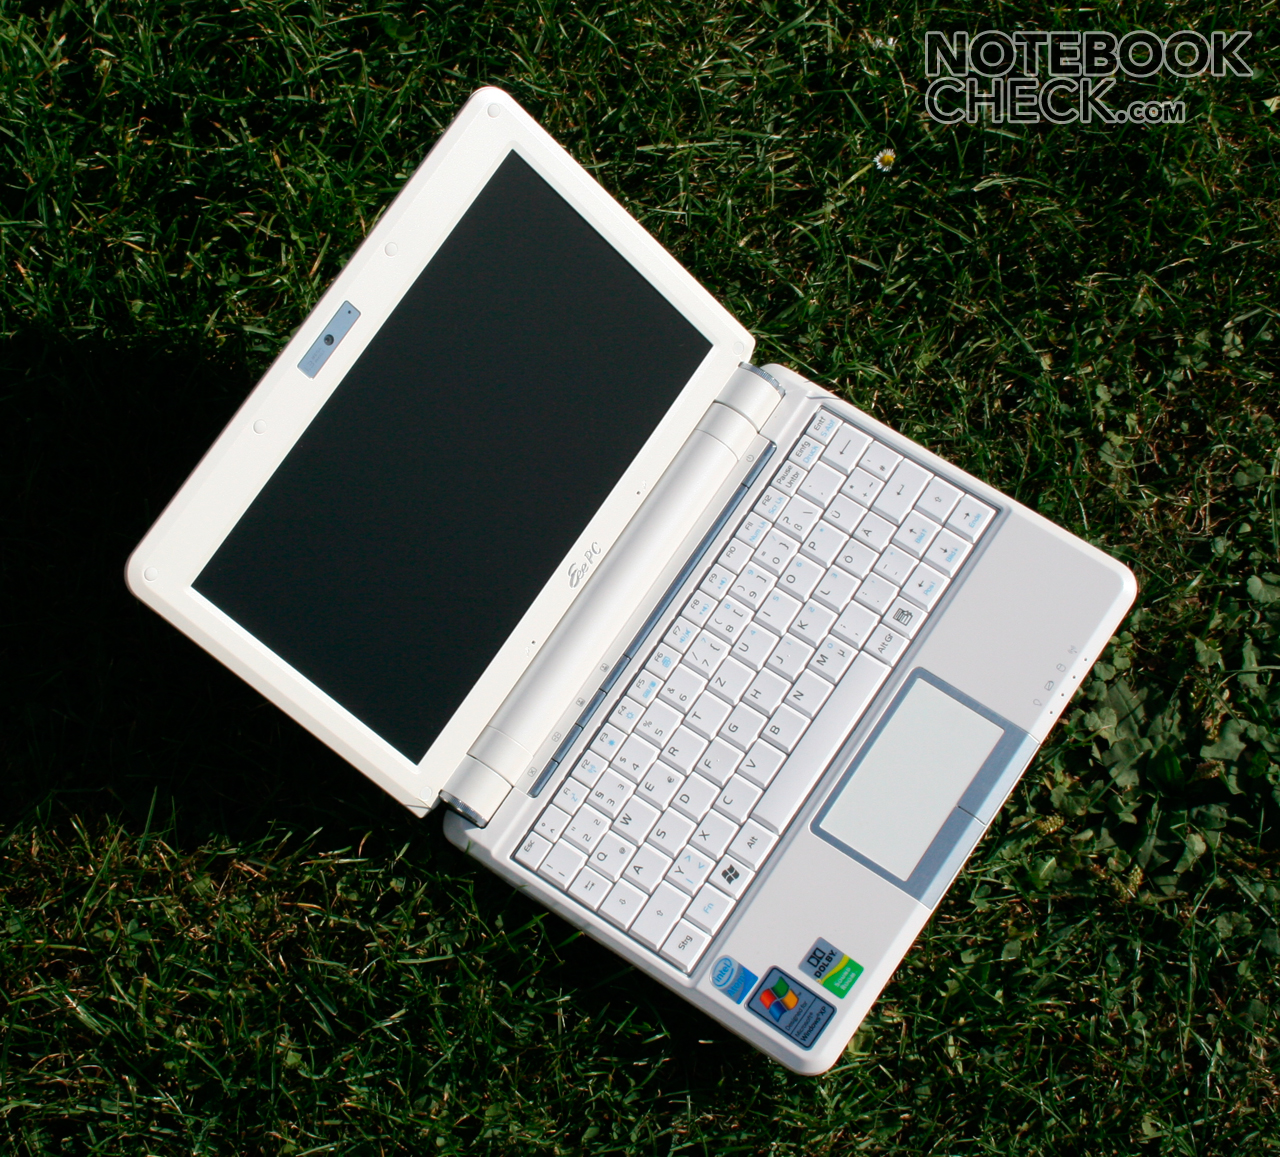 Asus Eee PC 901 Drivers for Windows Mac